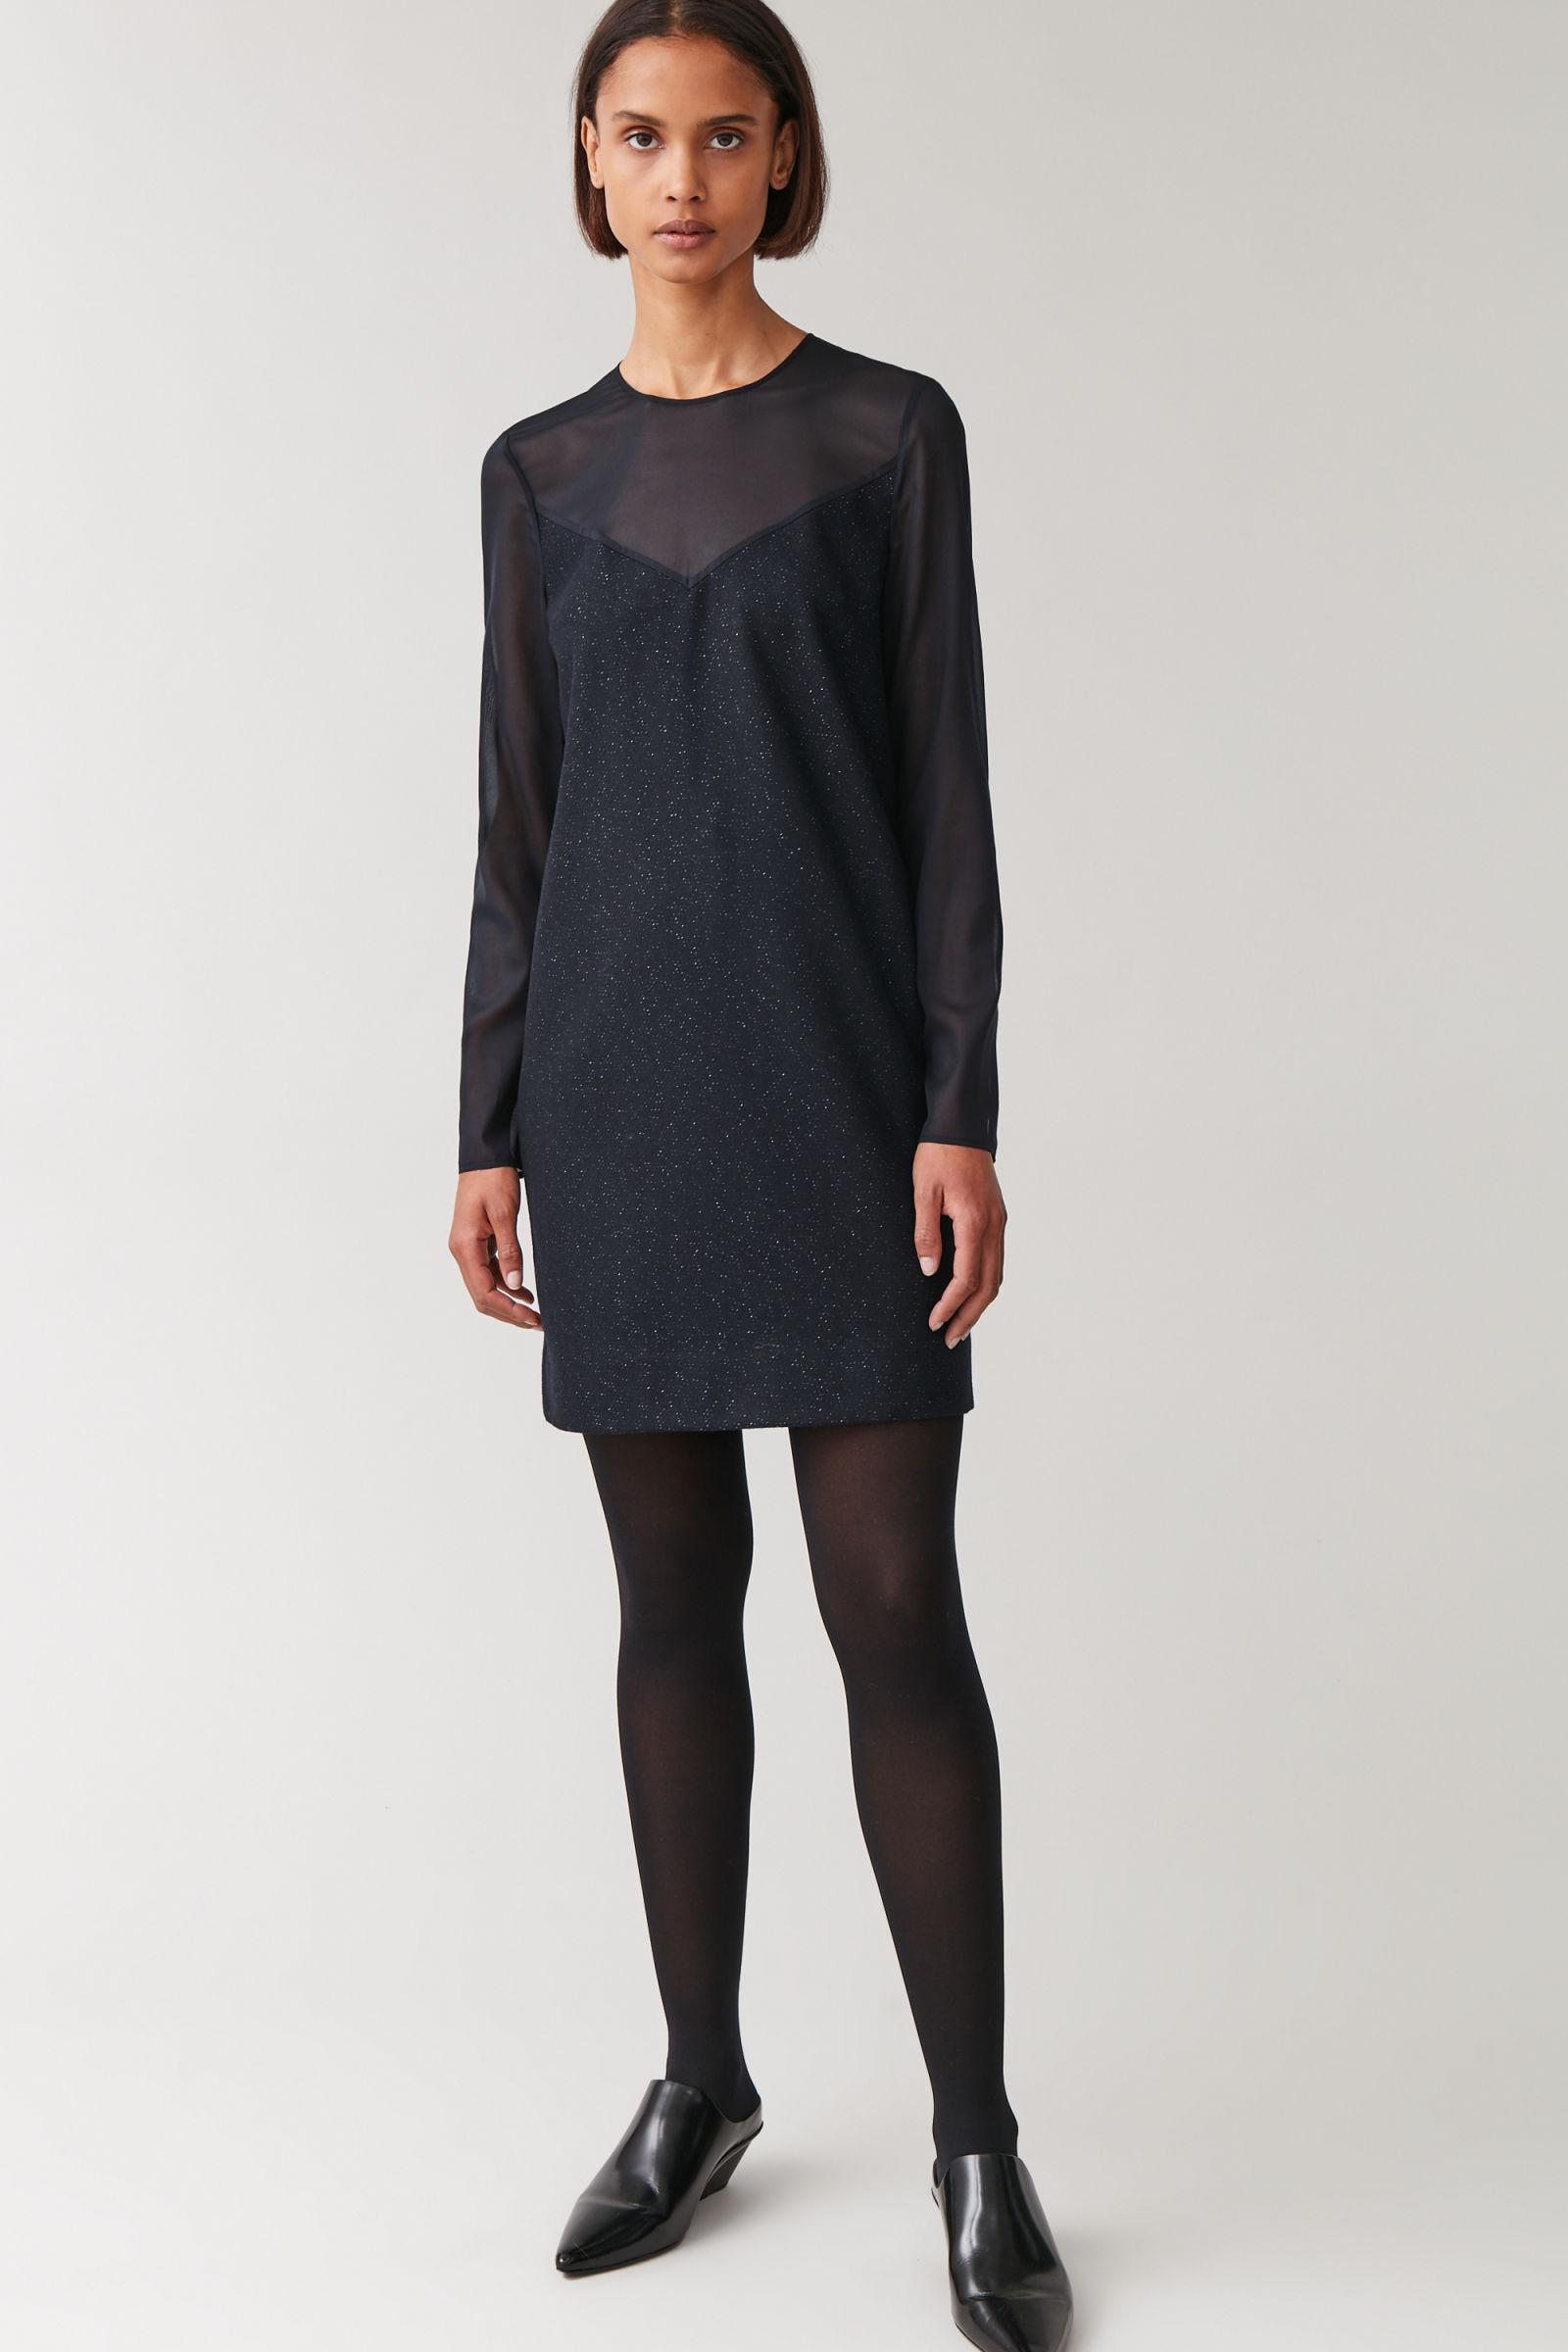 WOOL-MIX DRESS WITH SHEER UPPER